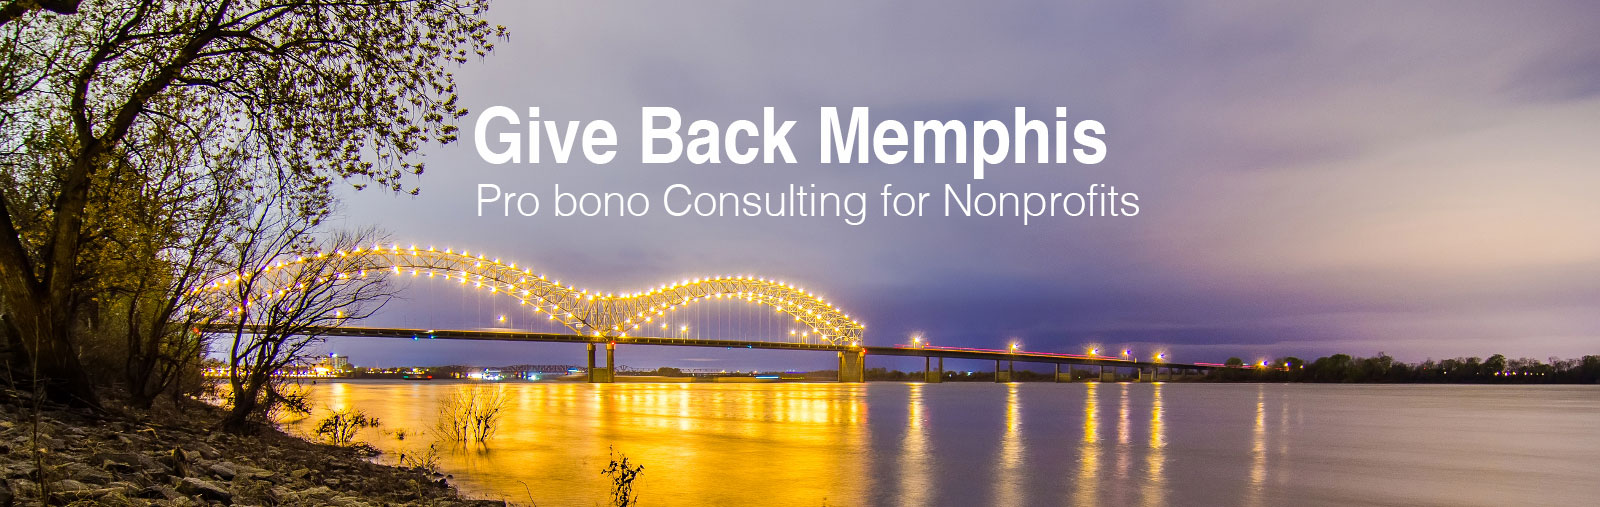 Give Back Memphis